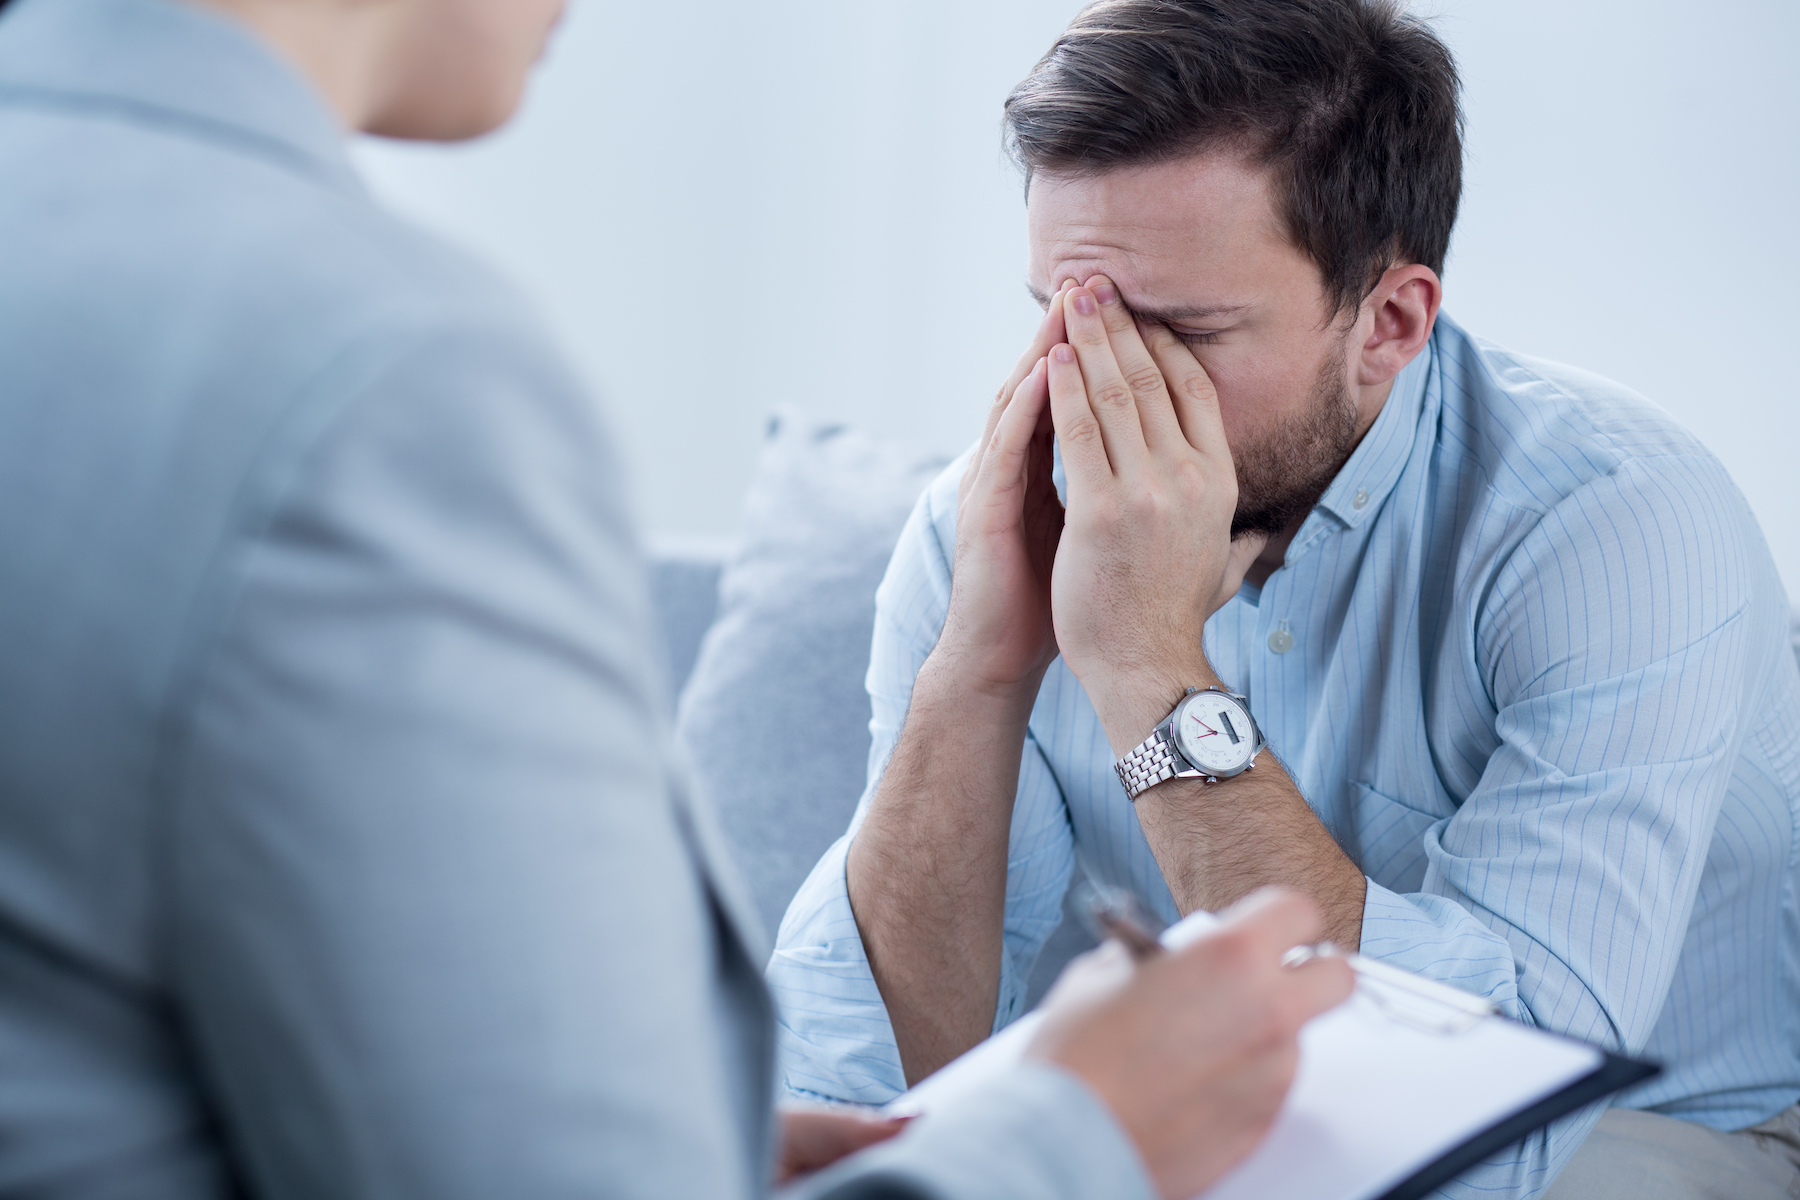 Does Therapy Help During Divorce?